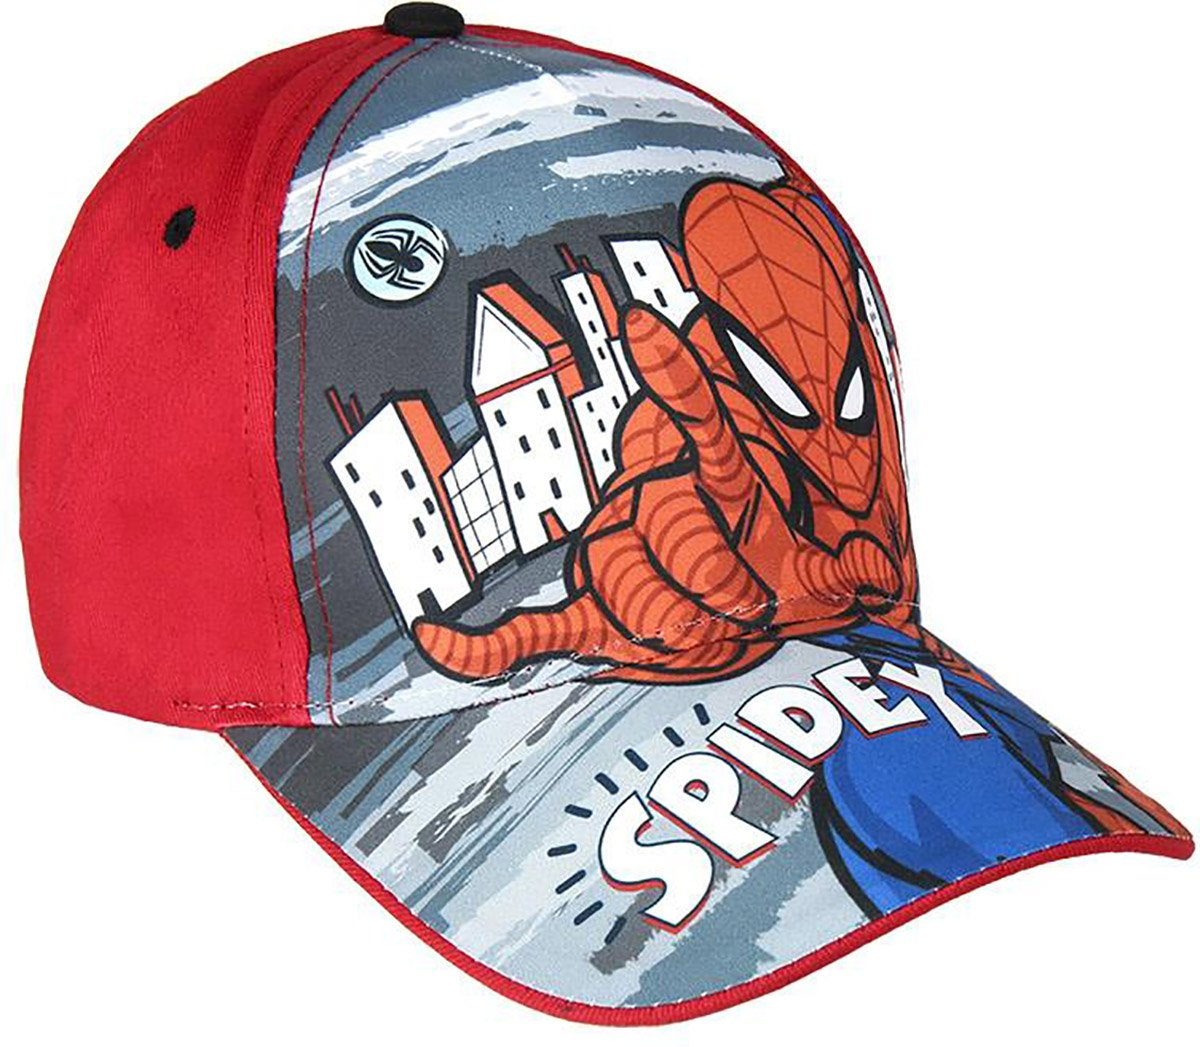 Sapca Spiderman, Rosu